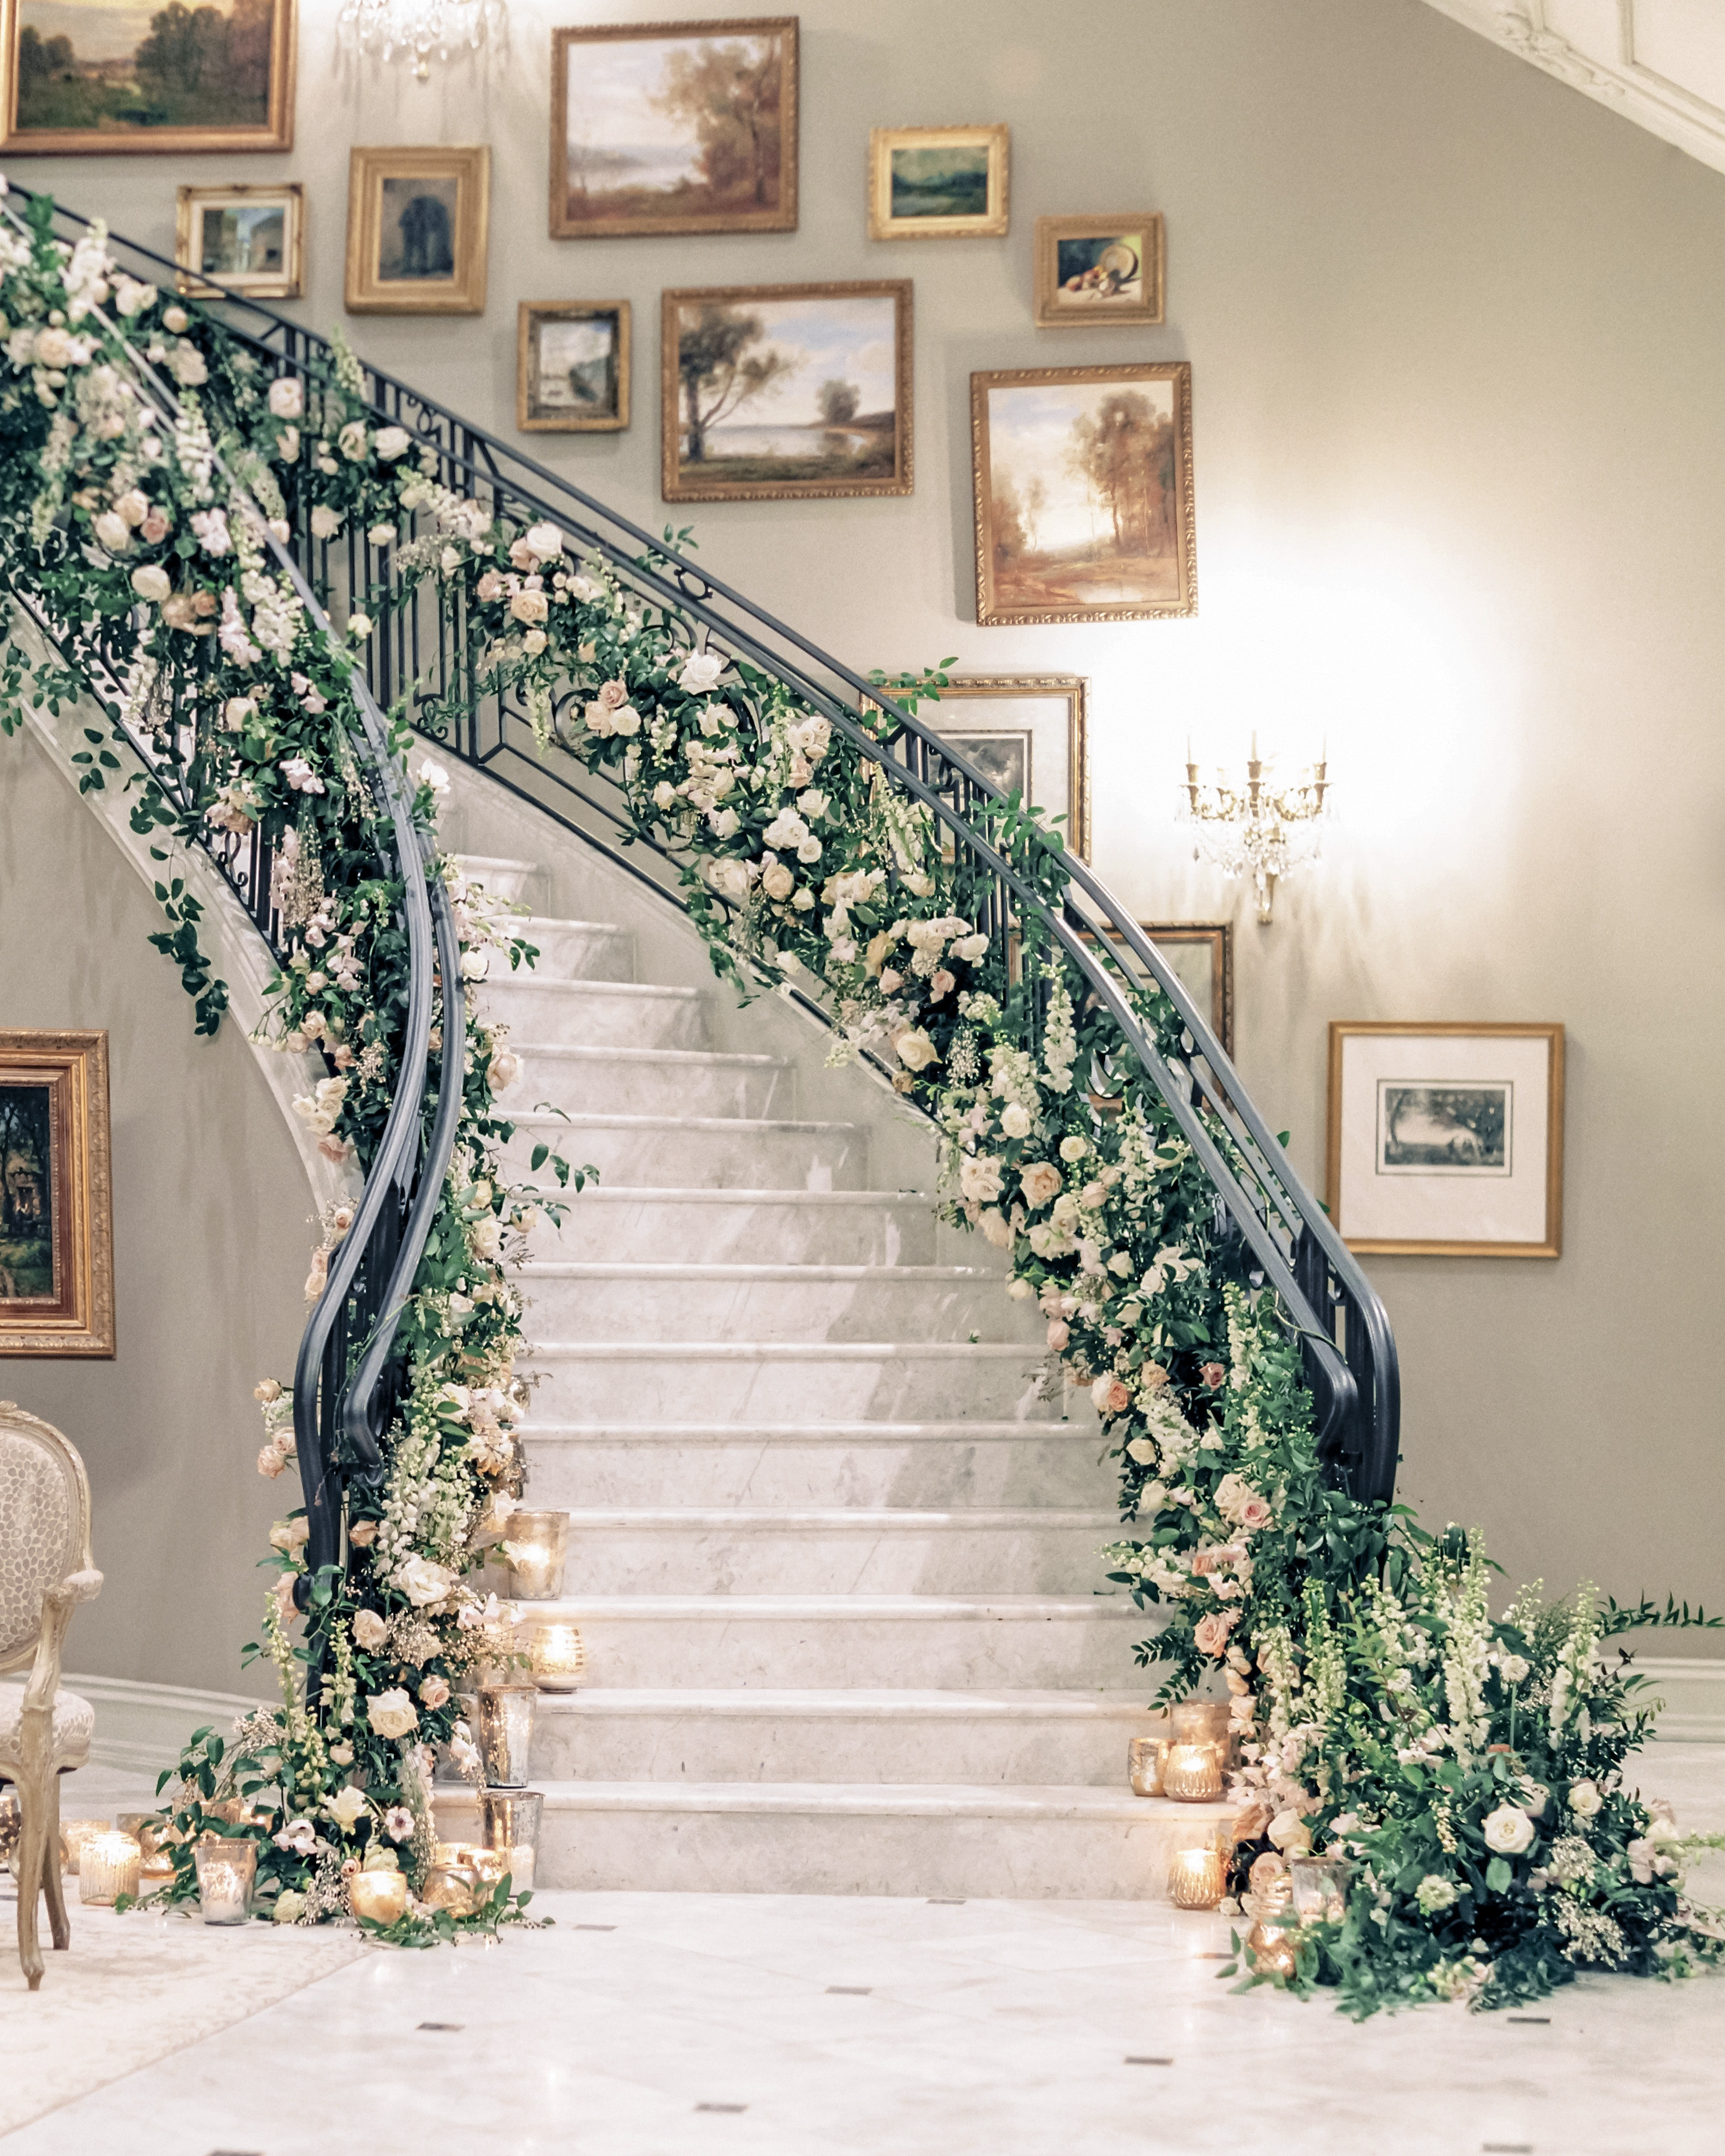 stair banister decor curving staircase floral greenery